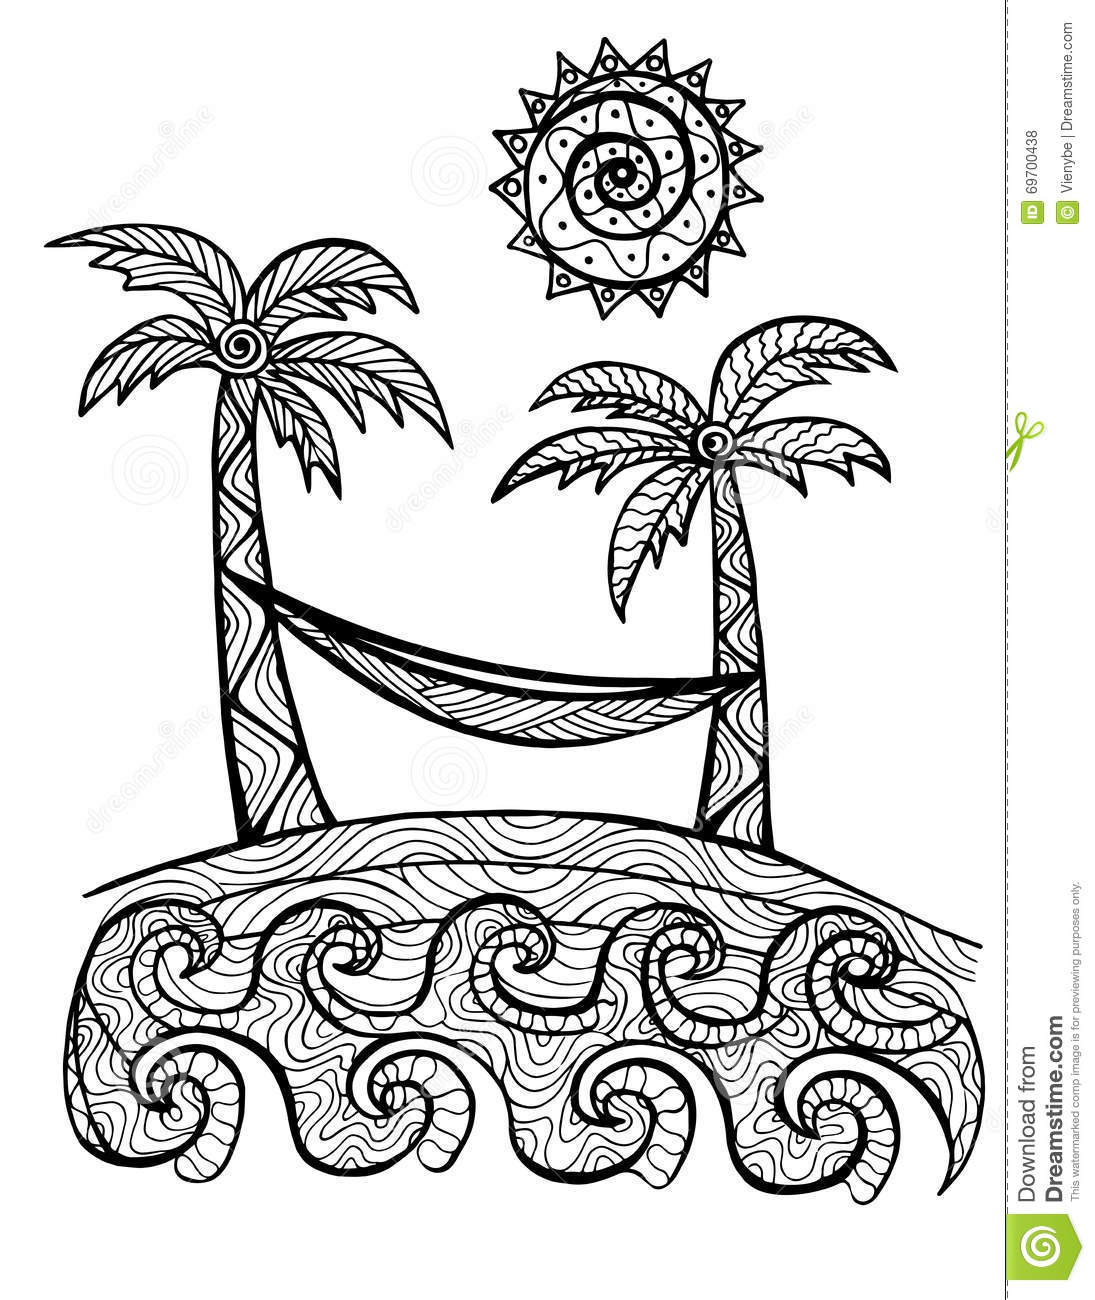 Hand Drawn Palm Trees Illustration For Coloring Book Stock